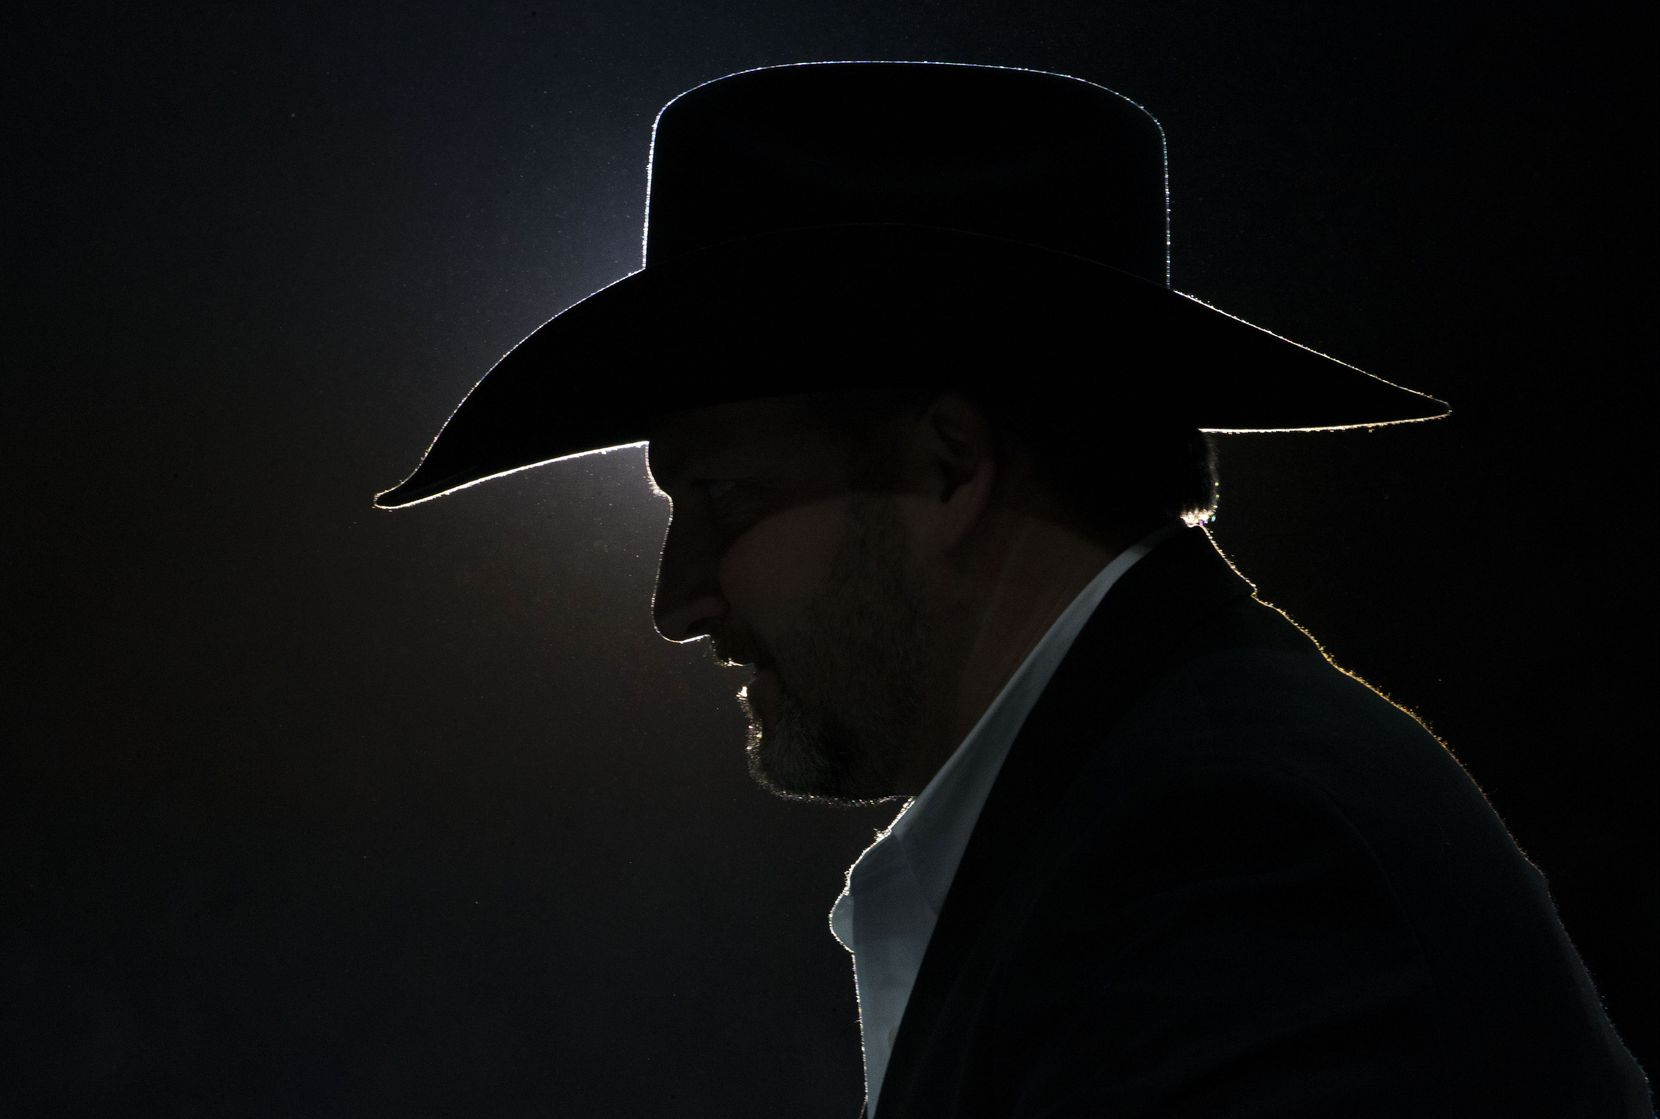 Rafe Nielsen, Browning's director of marketing and communications, during RFD-TV's The American rodeo at AT&T Stadium in Arlington on Sunday, March 3, 2019. He was part of the group who awarded the event winners their large checks.